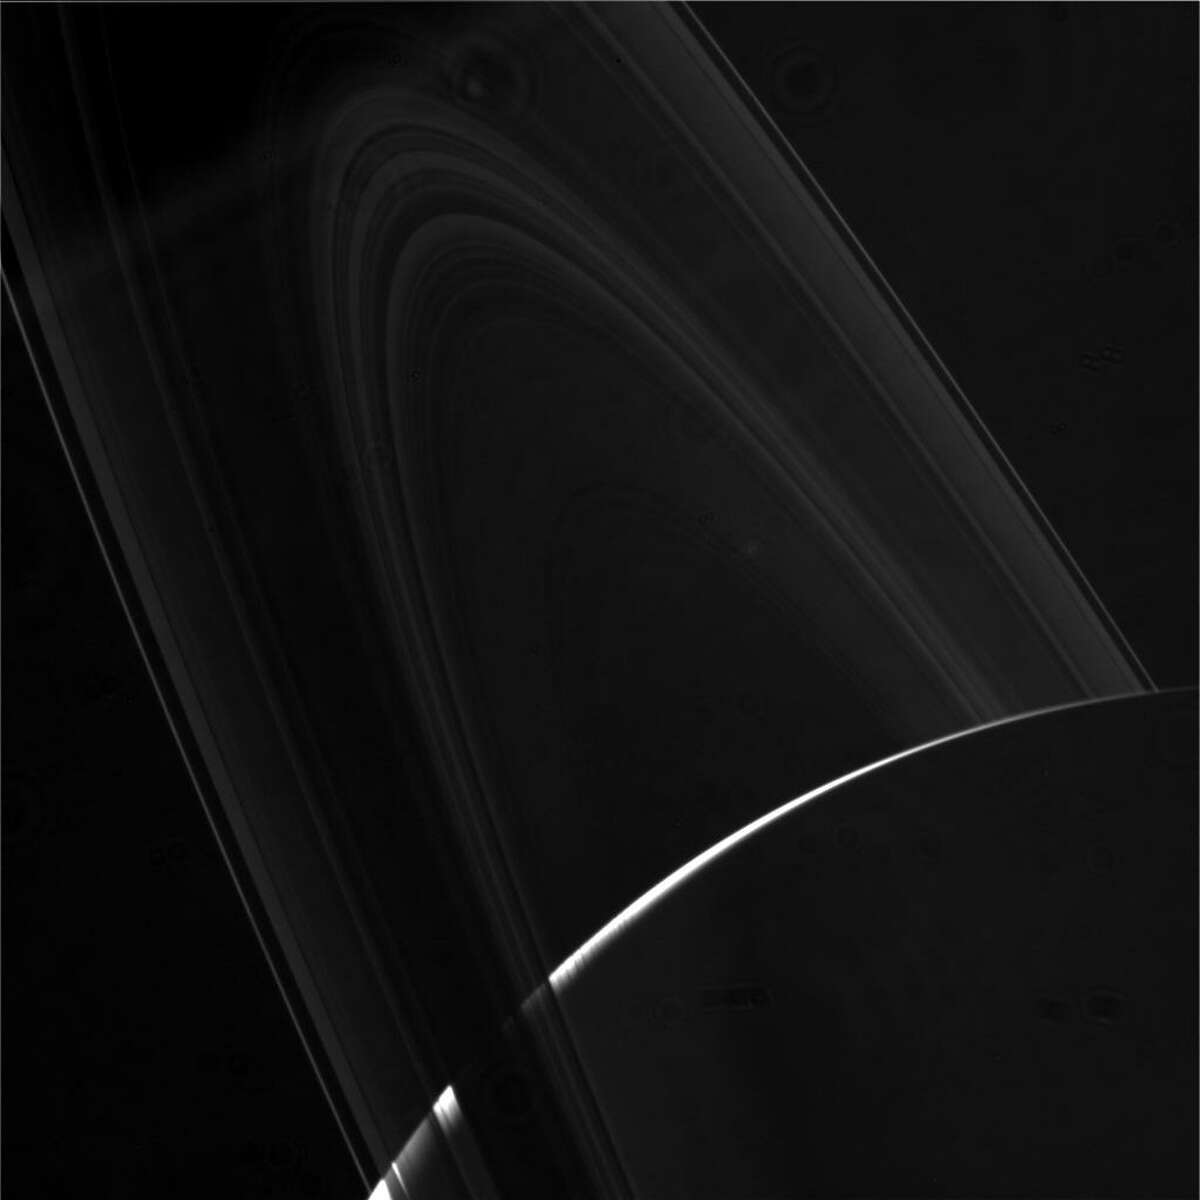 In this photo from Cassini's second dive through the gap between Saturn and its rings, the camera was pointing toward SATURN-RINGS, and the image was taken using the CL1 and CL2 filters. This image has not been validated or calibrated. A validated/calibrated image will be archived with the NASA Planetary Data System.